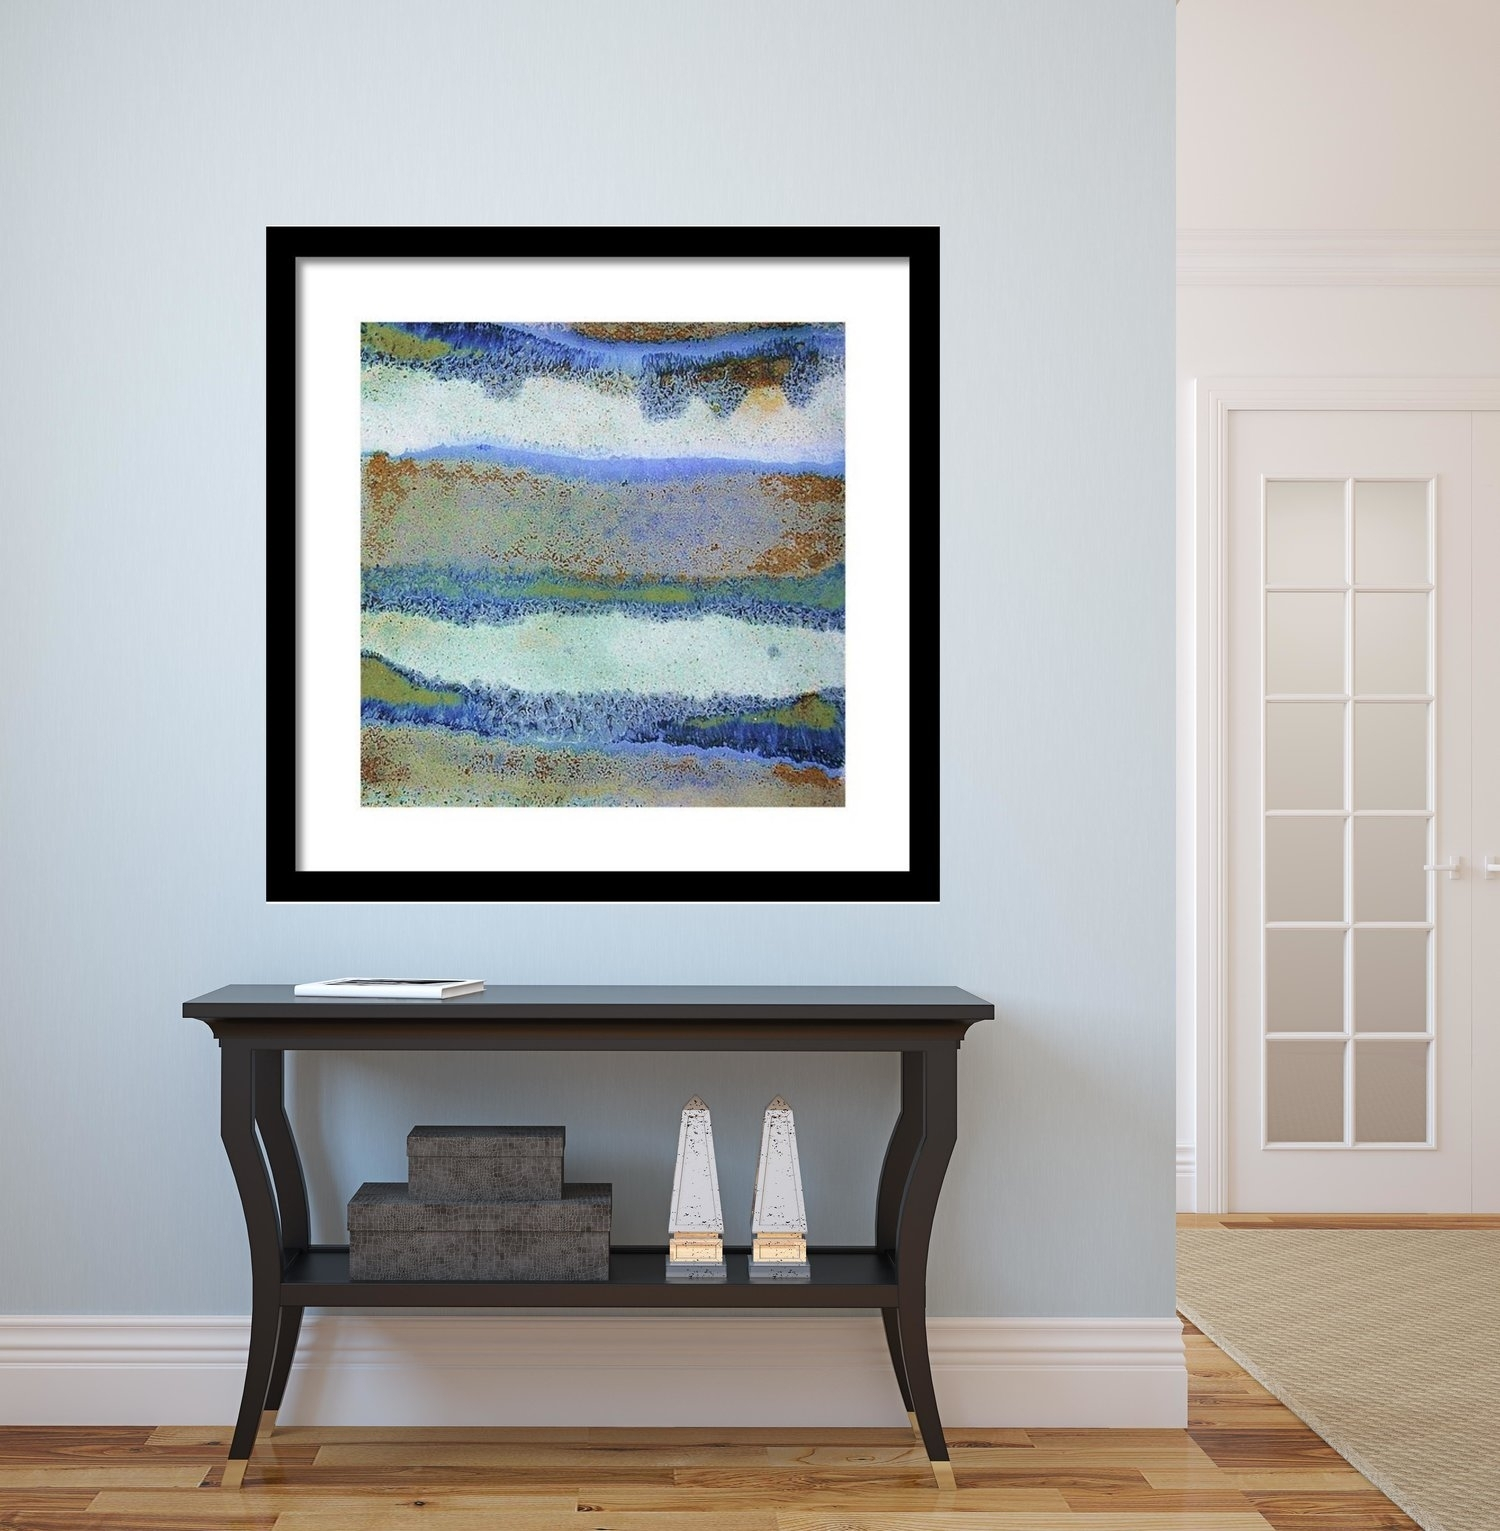 Abstract Framed Wall Art – Square #33 | Modern Wall Art, Blue For Latest Abstract Framed Art Prints (View 10 of 15)